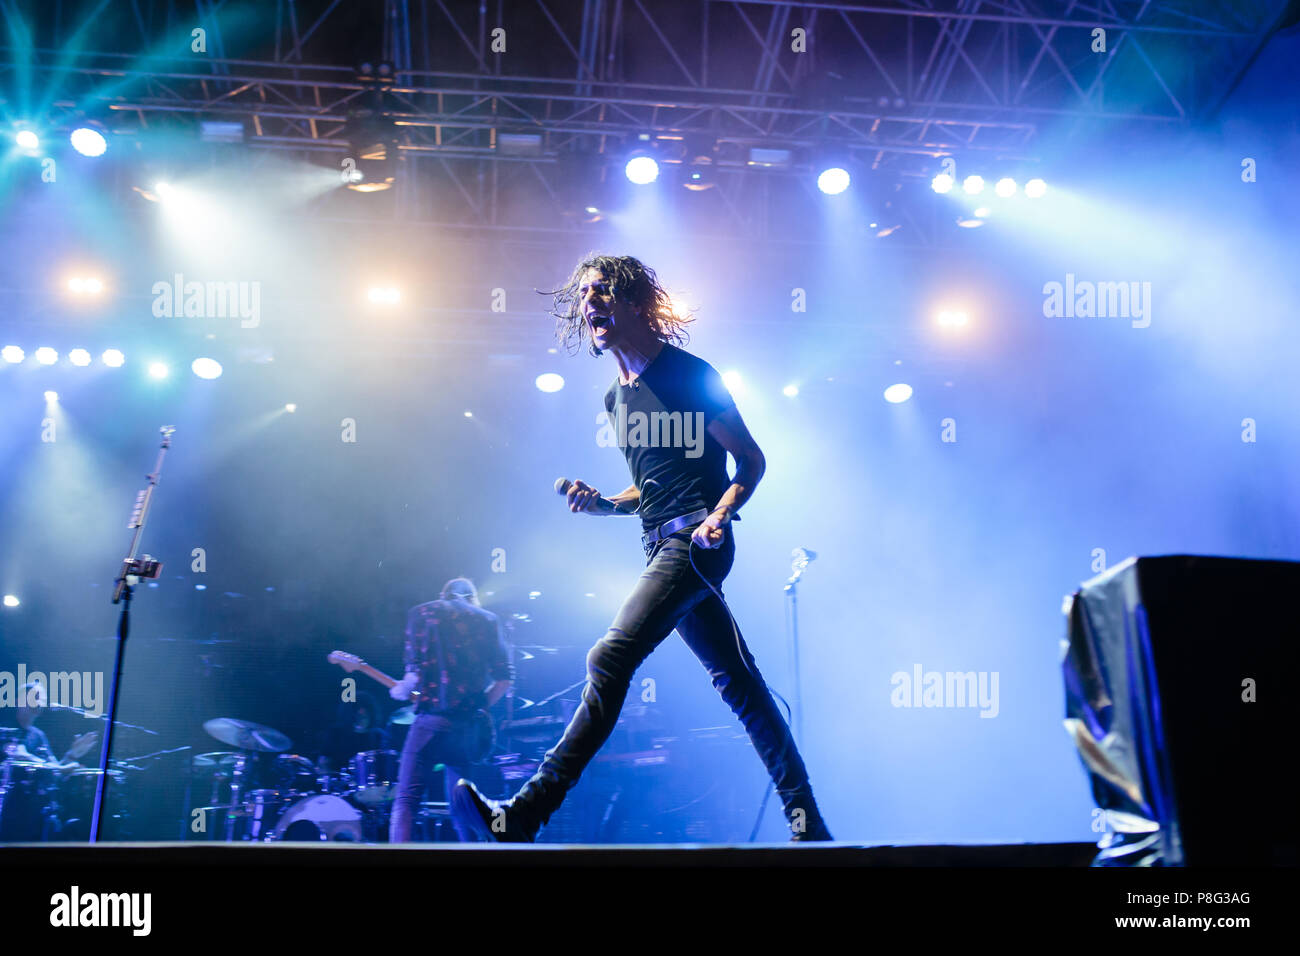 Turin, Italy. 10th July, 2018. Italian songwriter Motta performs live in Turin opening the flowers festival. Credit: Daniele Baldi/Pacific Press/Alamy Live News Stock Photo